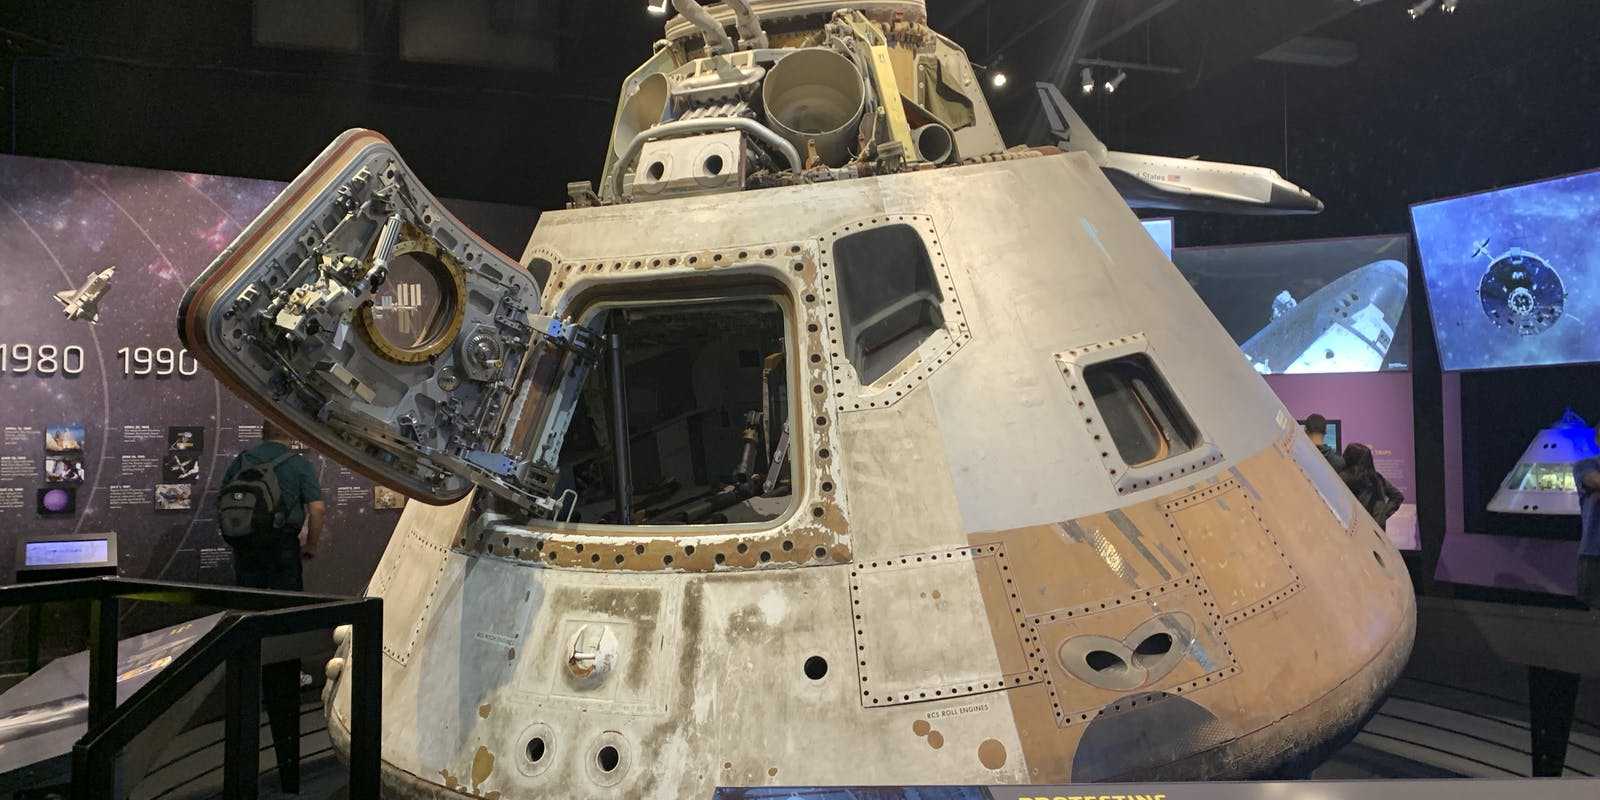 1973 Skylab 3 Apollo Command Module.